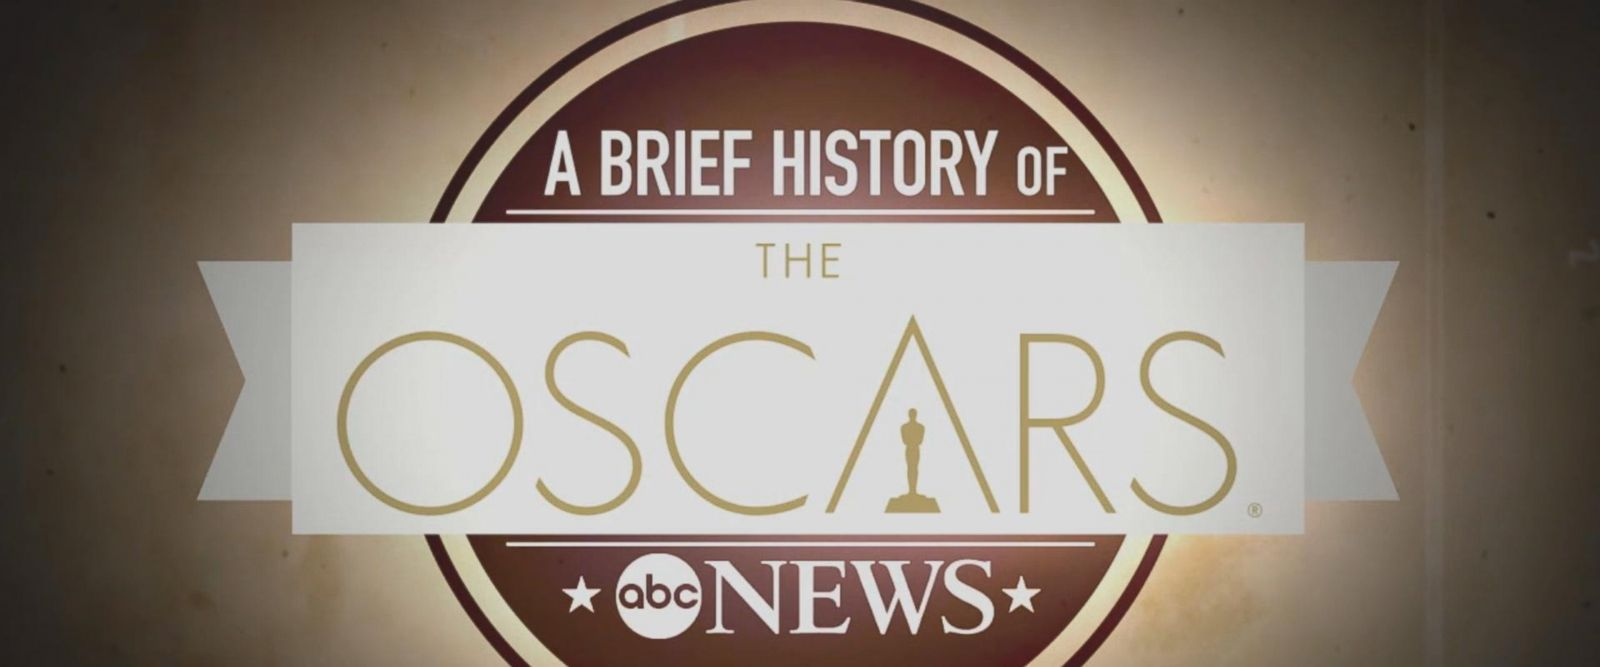 VIDEO: A Brief History of the Oscars